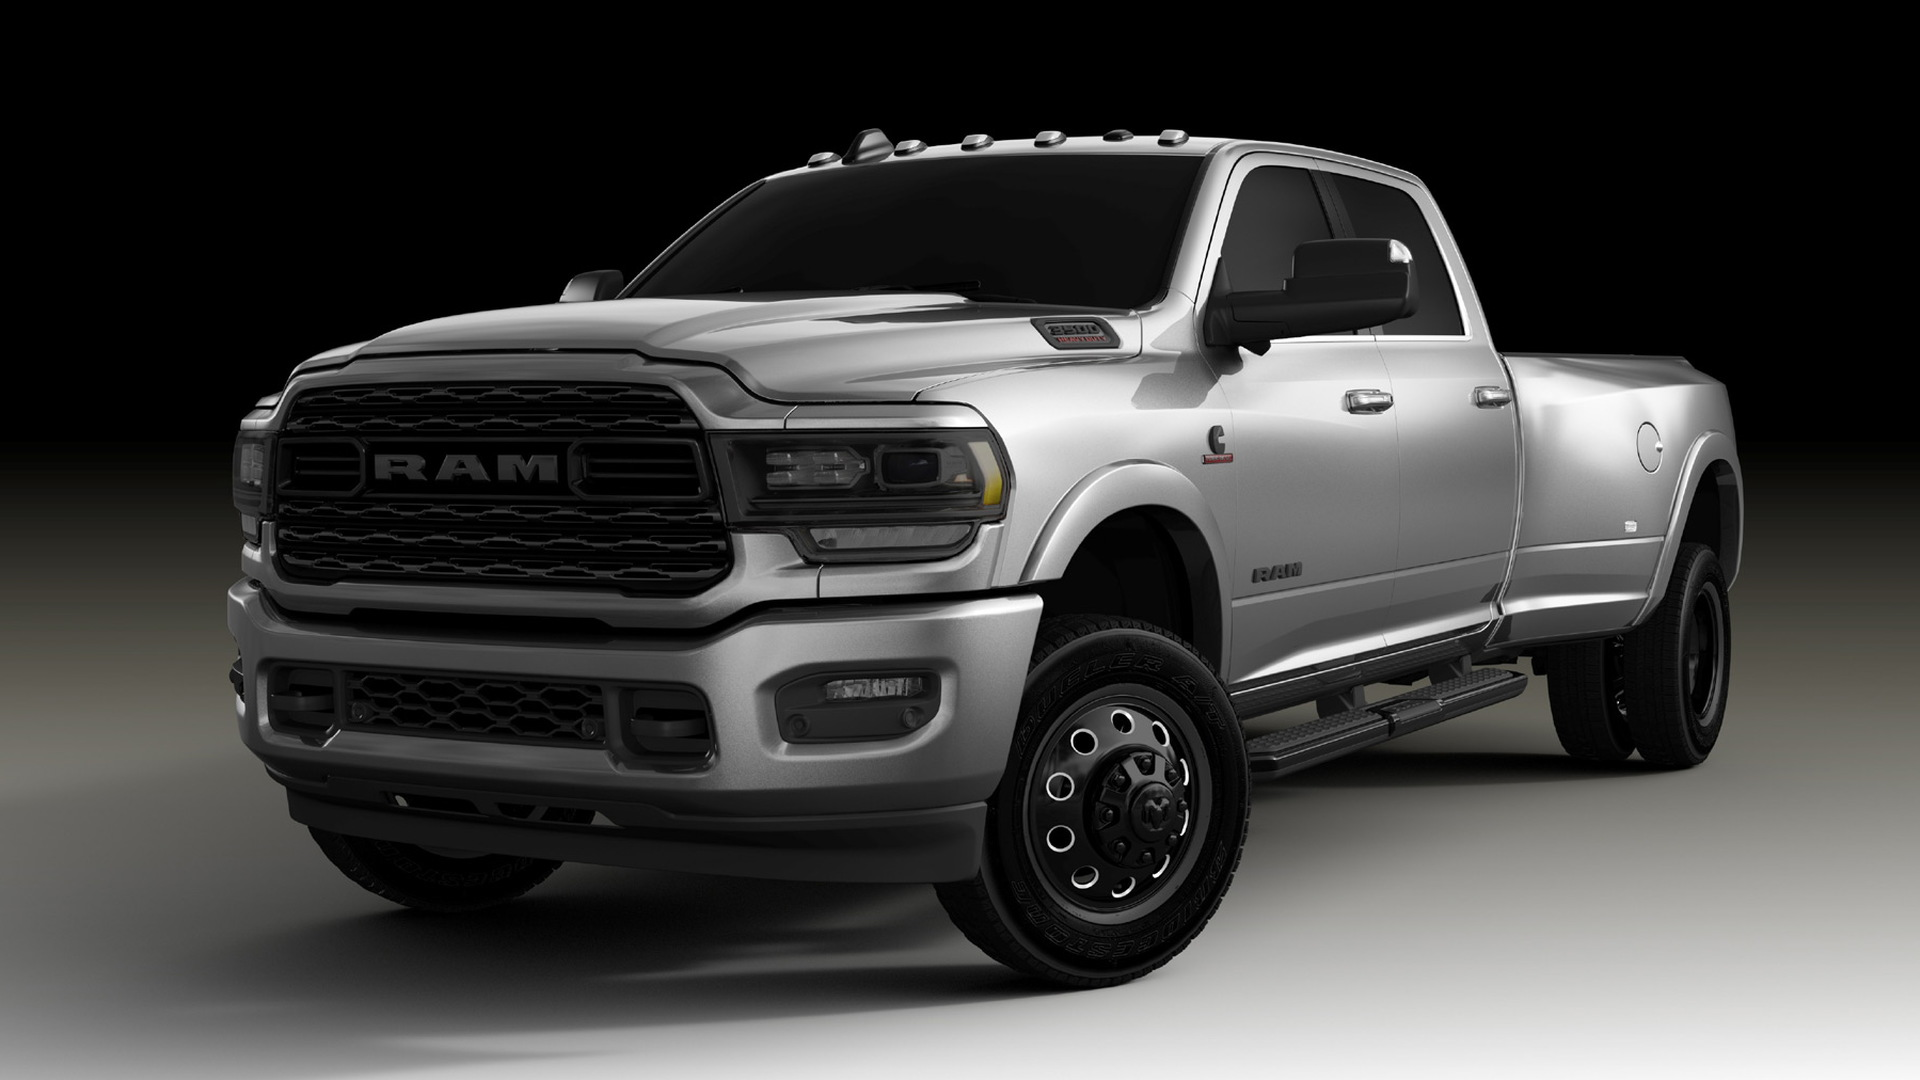 2020 Ram Heavy Duty Night Edition